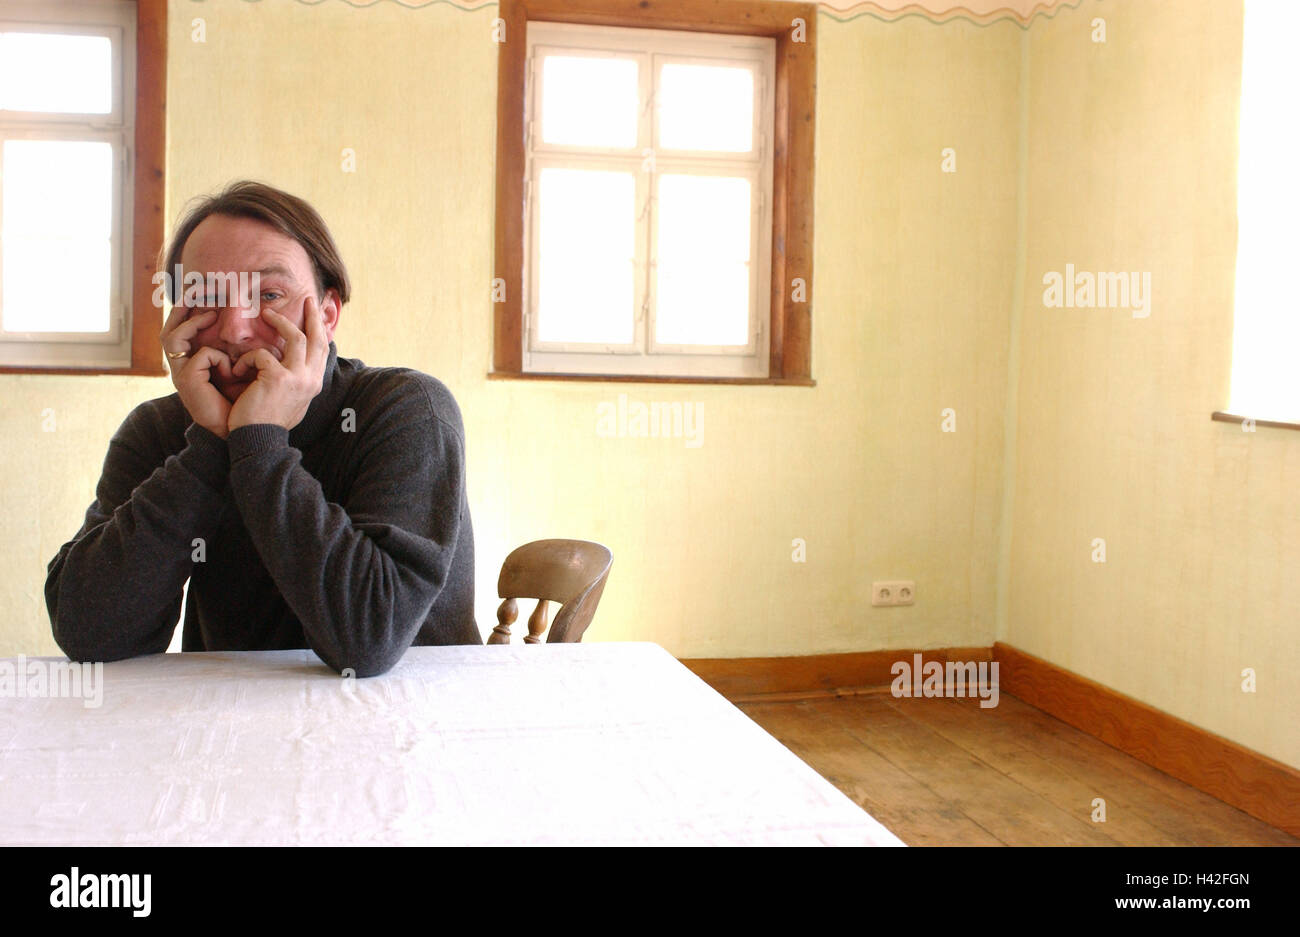 Living space, sit blank, table, man, head rest on, sadly, portrait, Ti5, flat, old building, exited, 30-40 years, - Stock Image